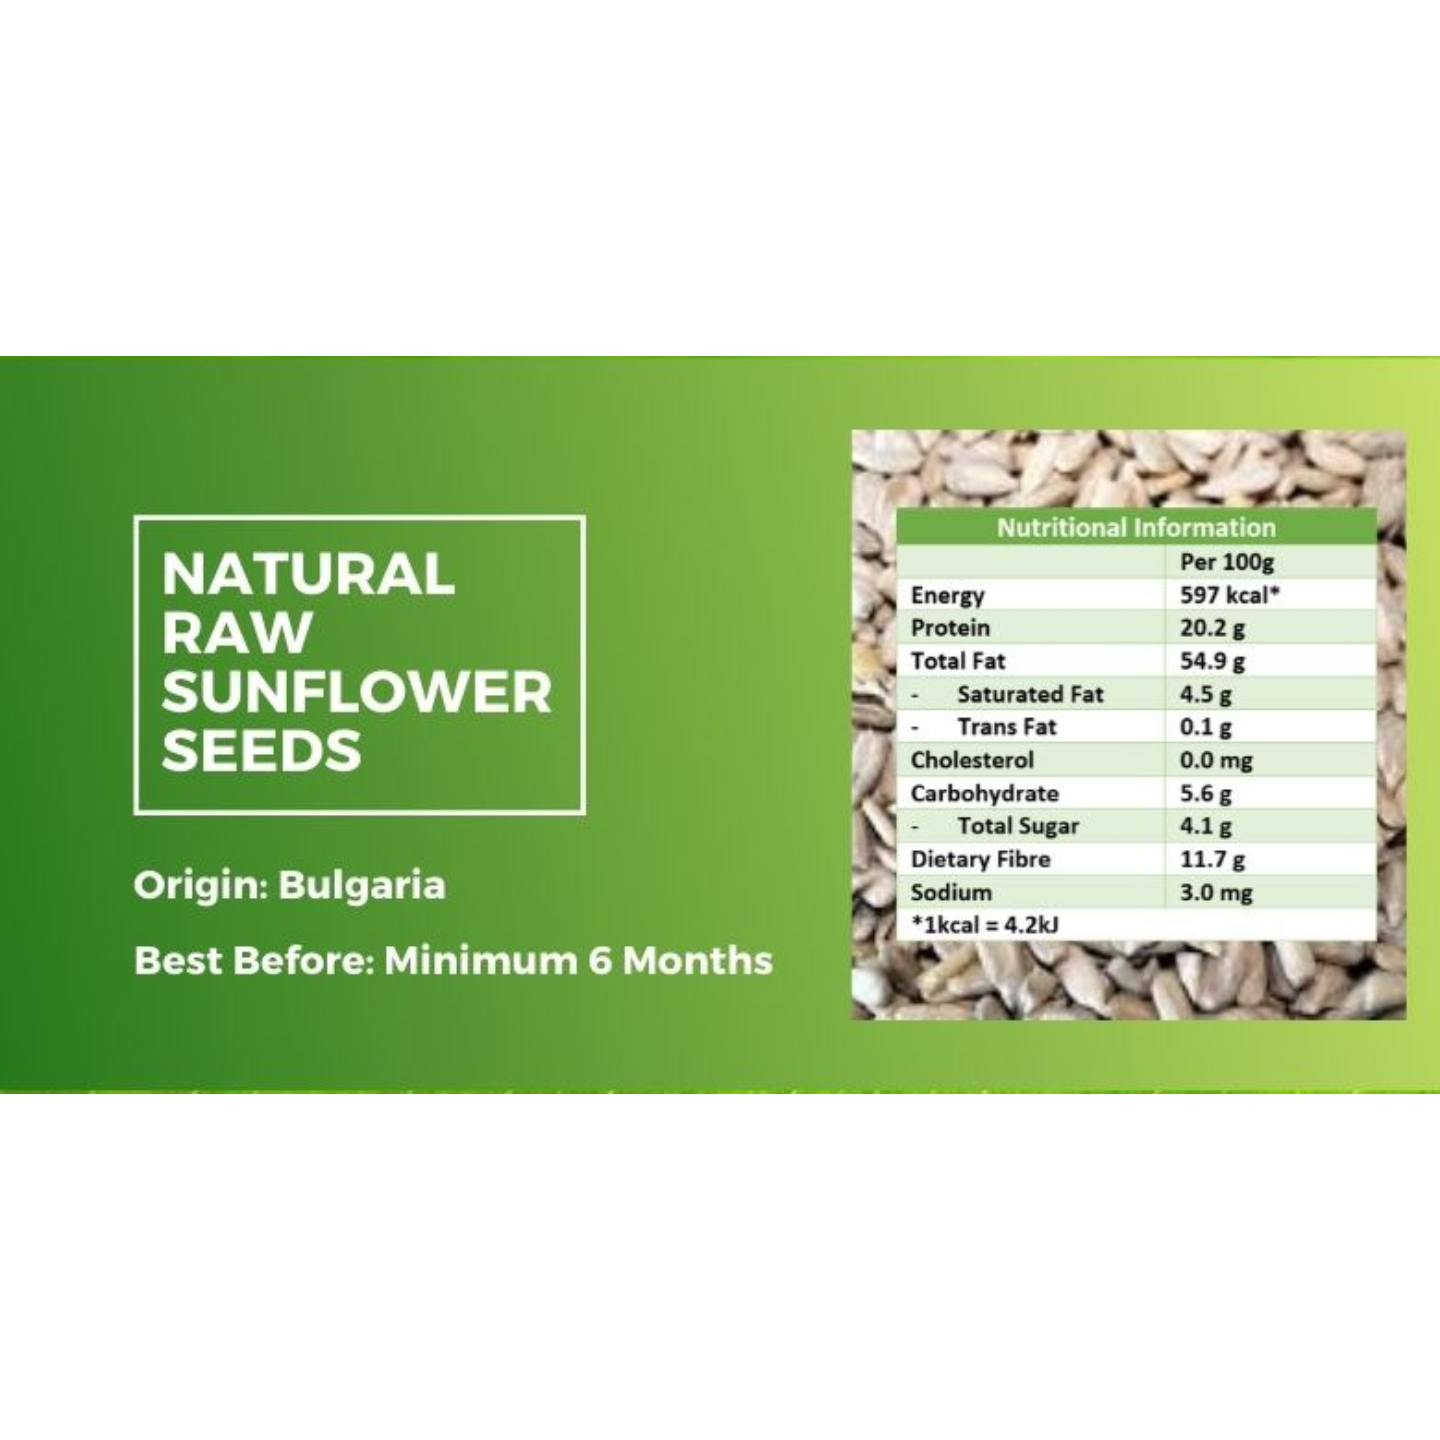 Natural Raw Sunflower Seeds [500g] - Value Pack